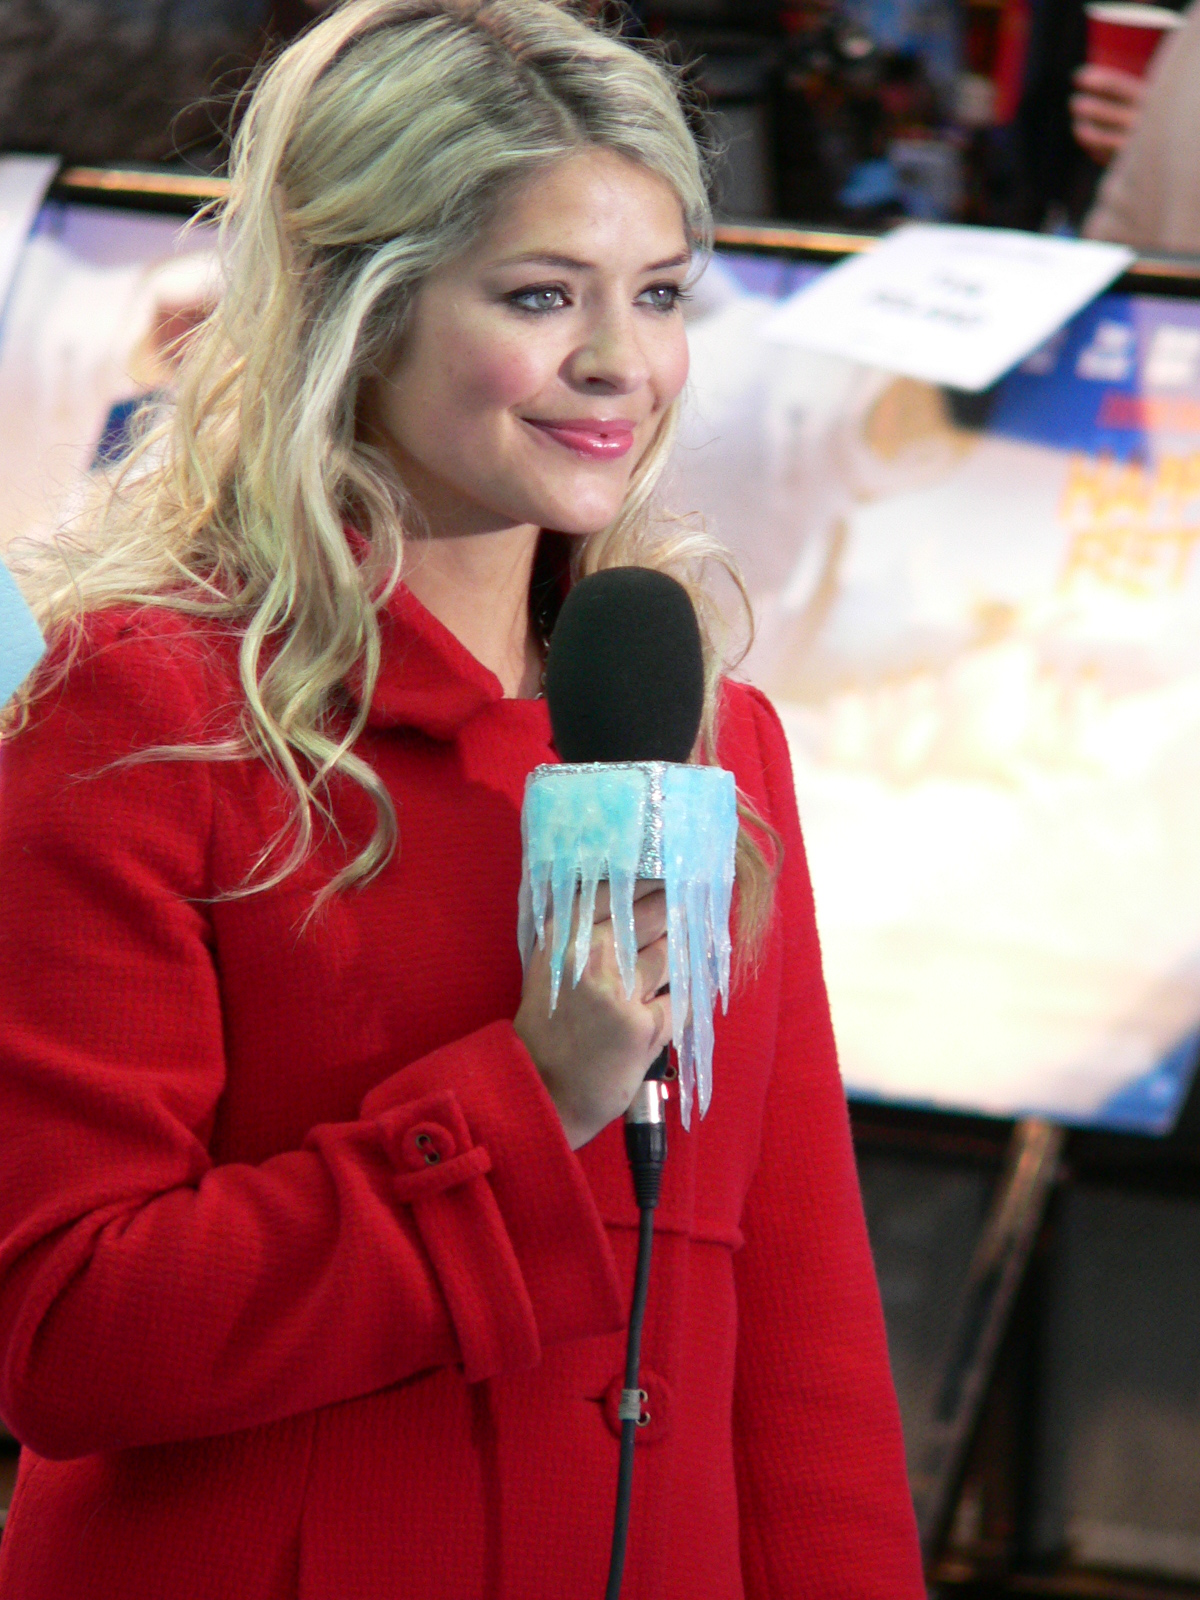 Image Result For Holly Willoughby